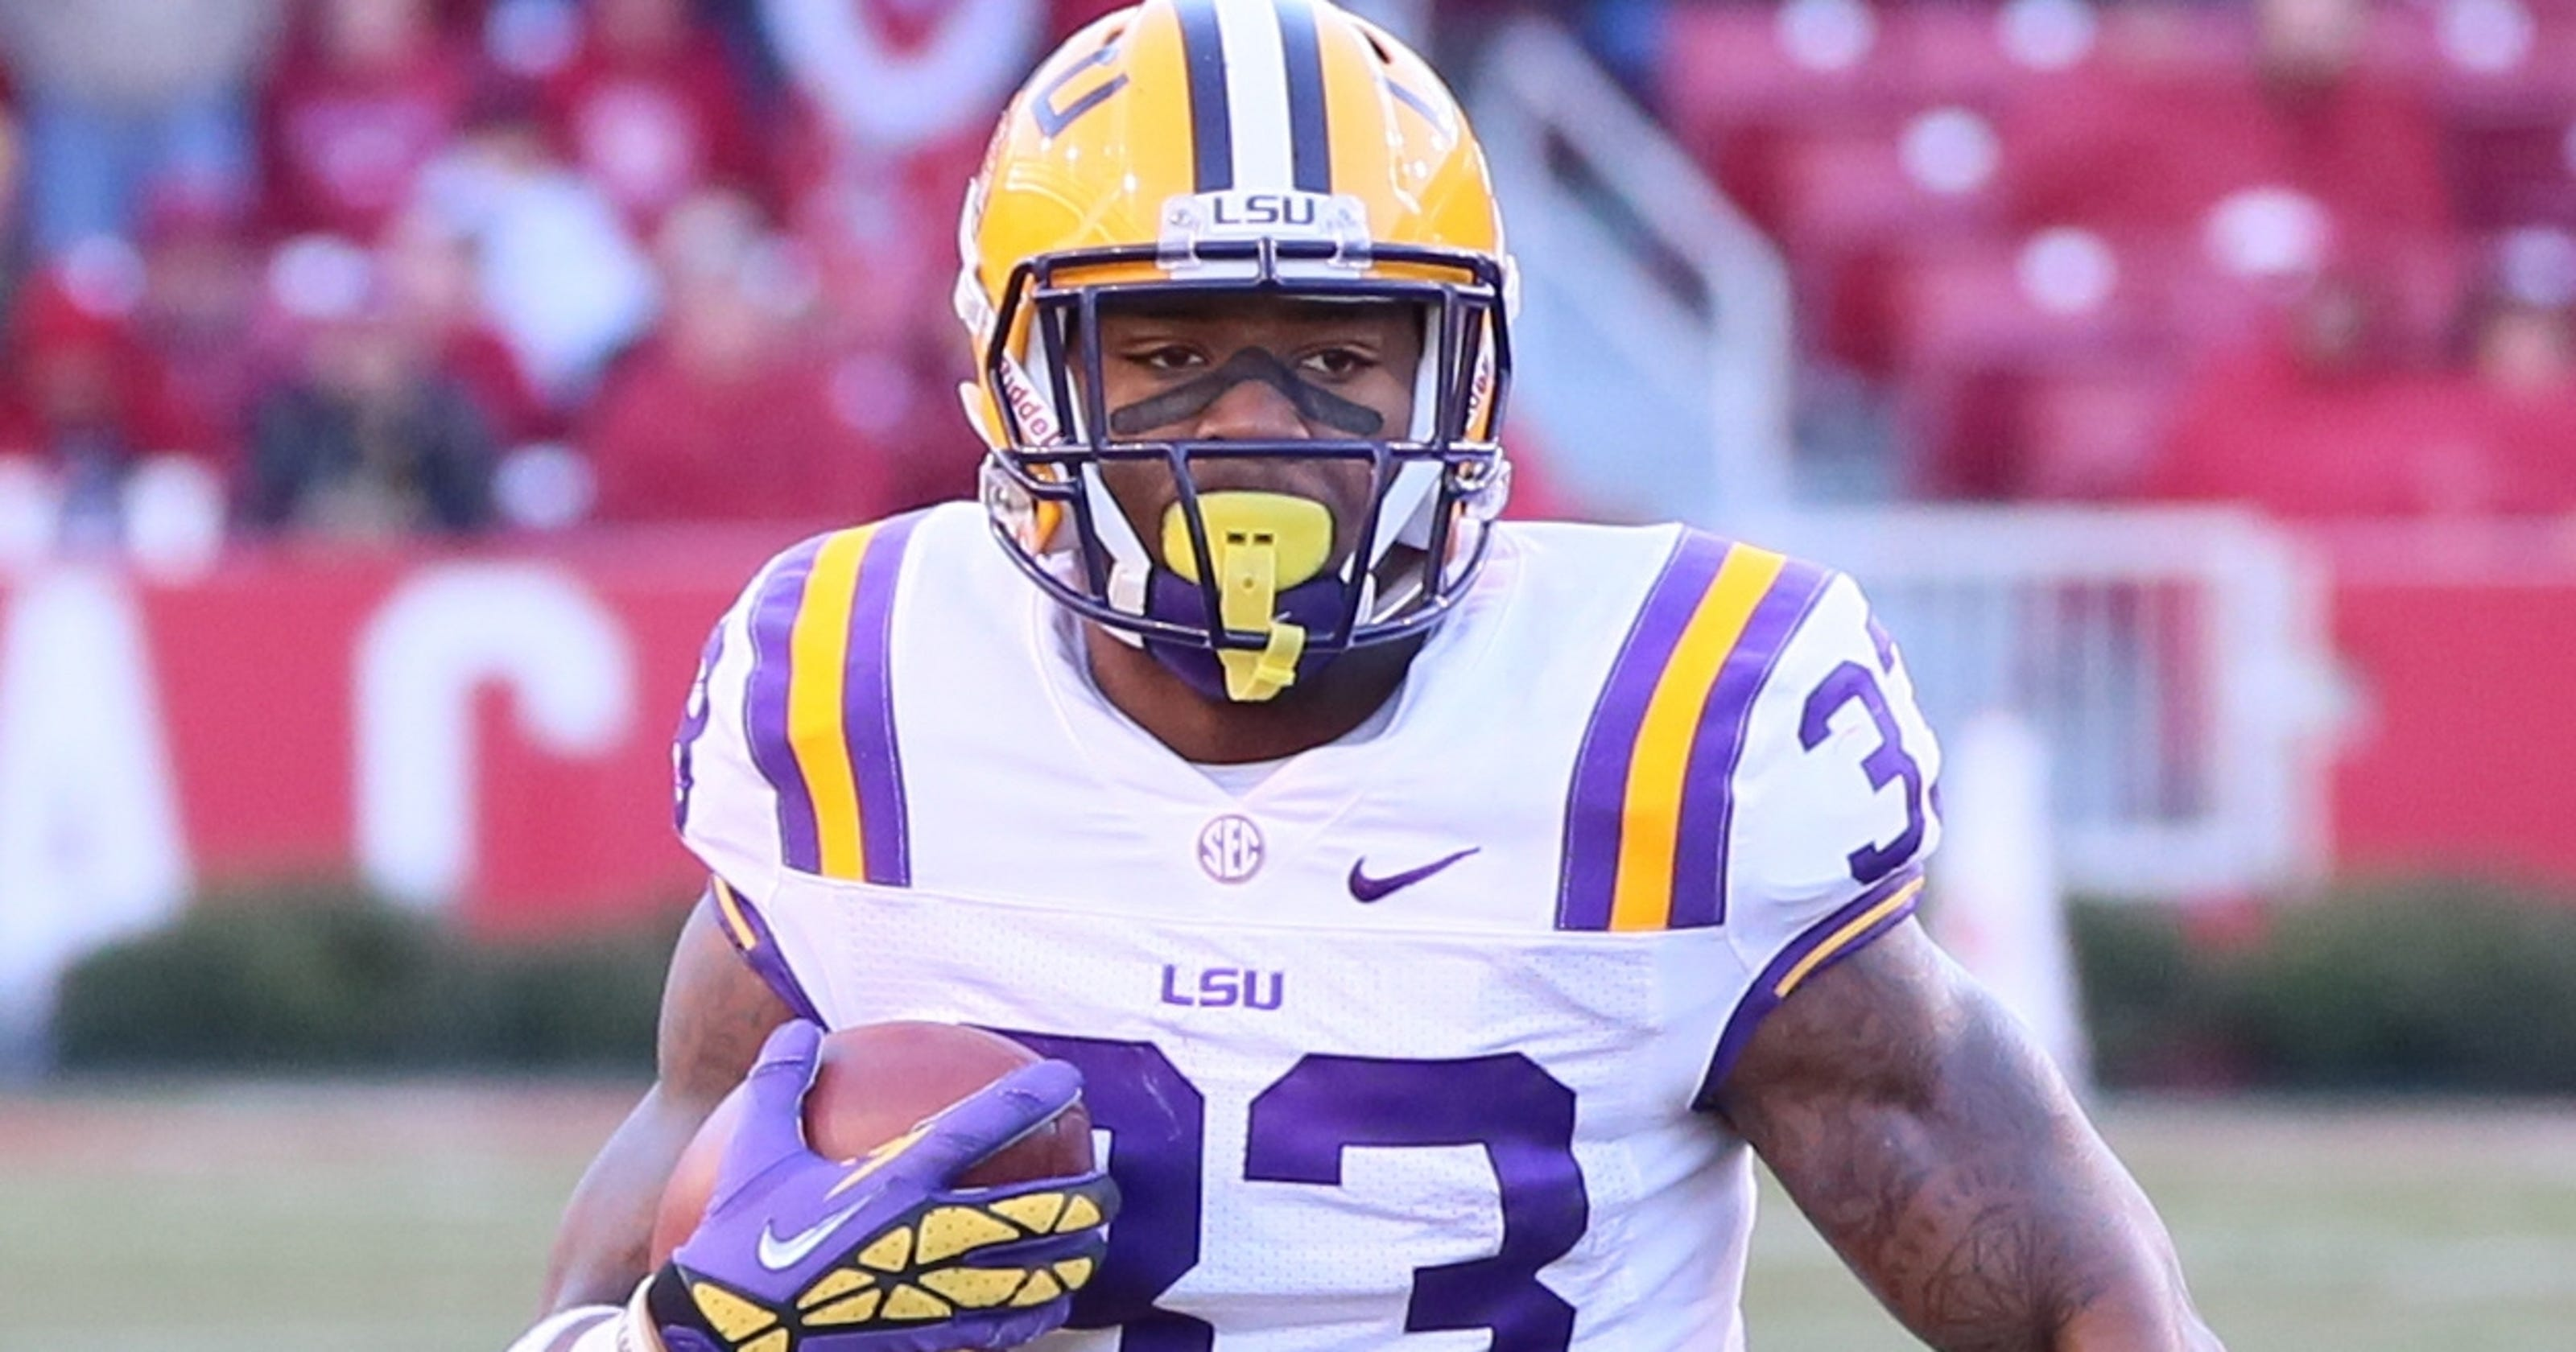 Attorney: LSU's Jeremy Hill was heckled about his past